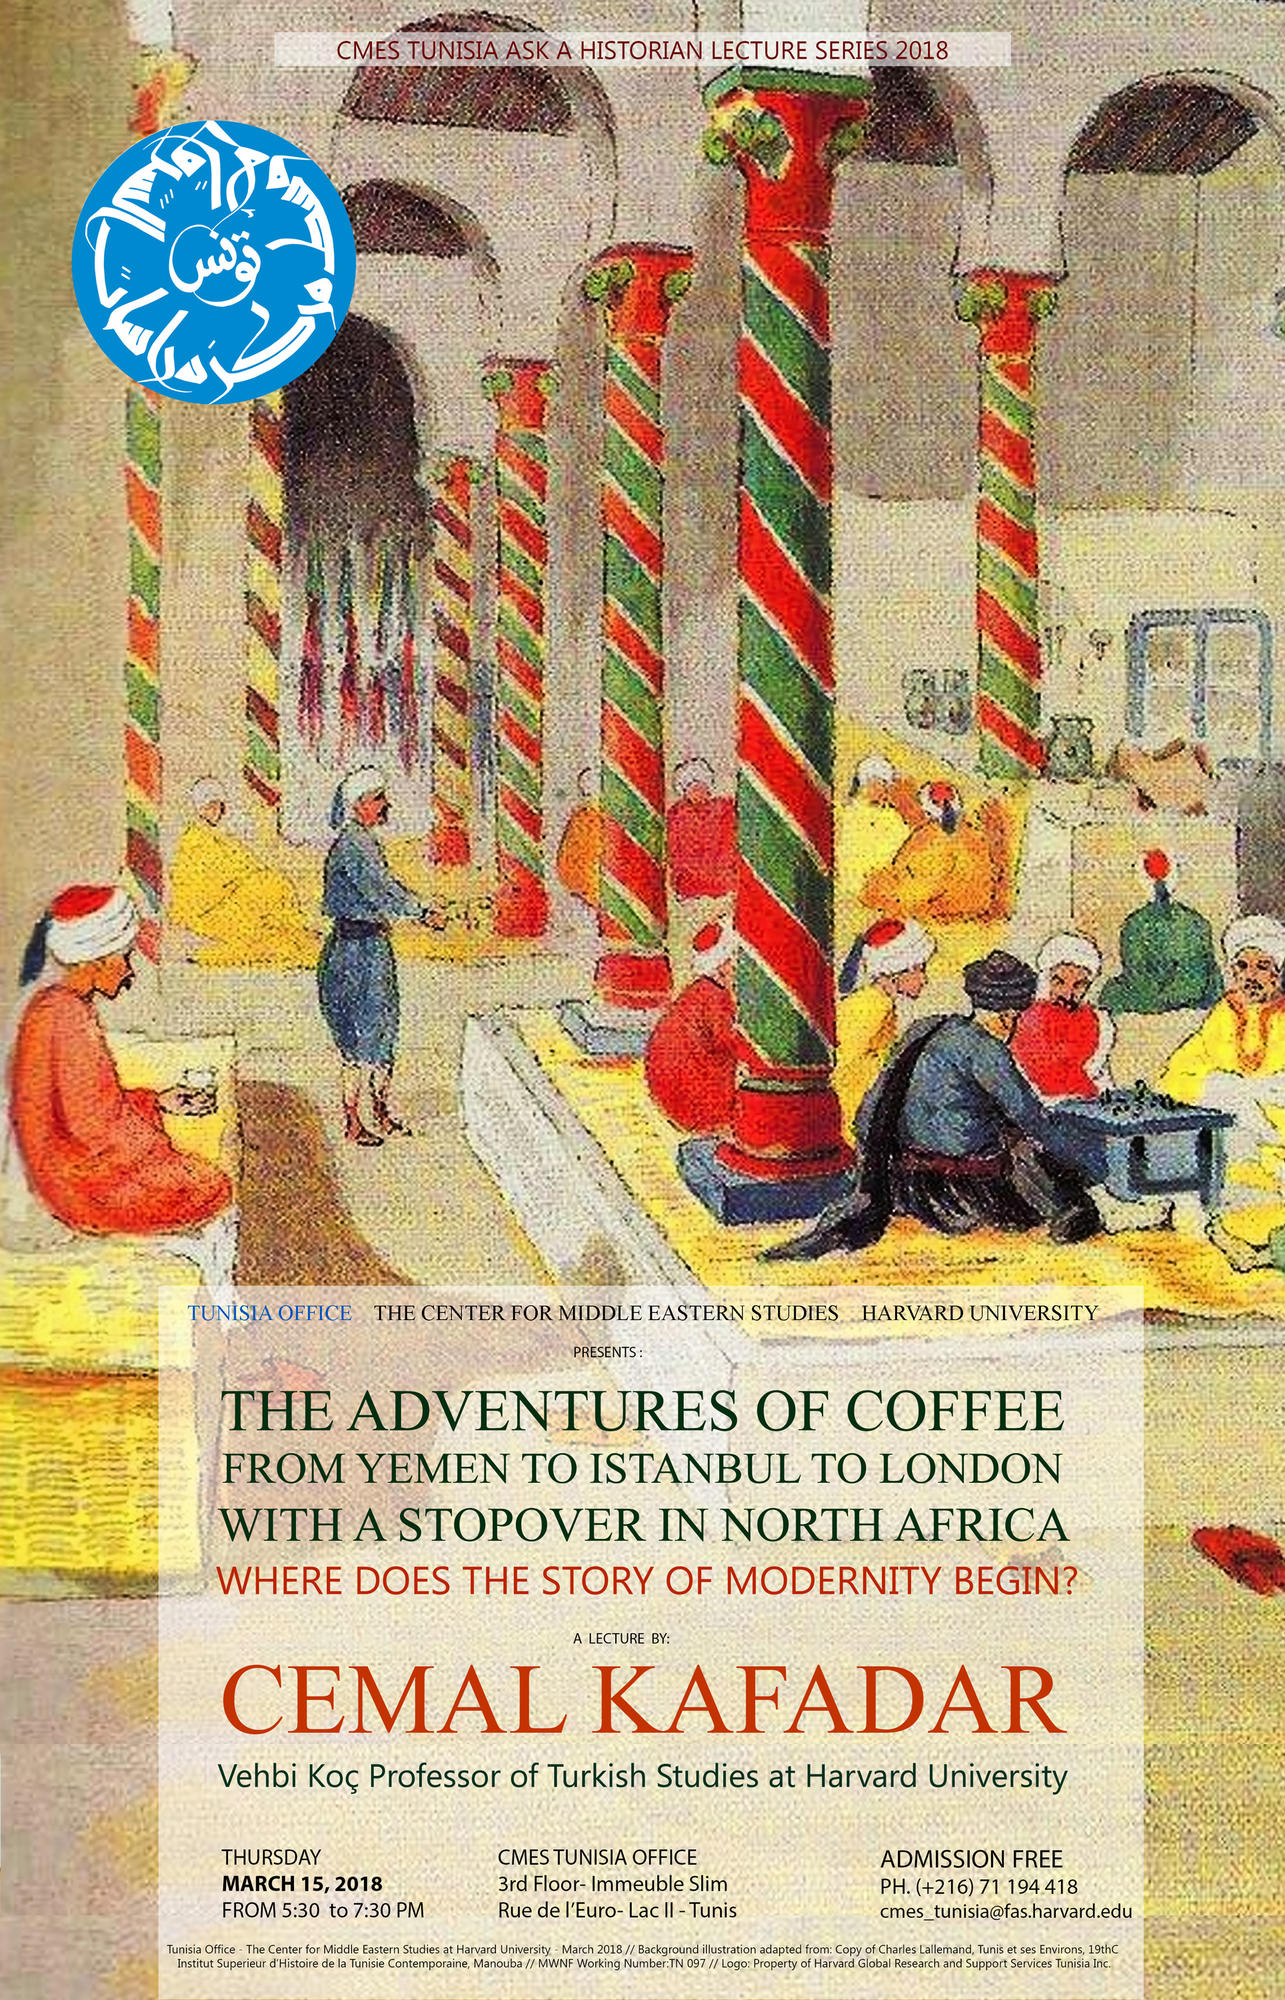 The Adventures of Coffee